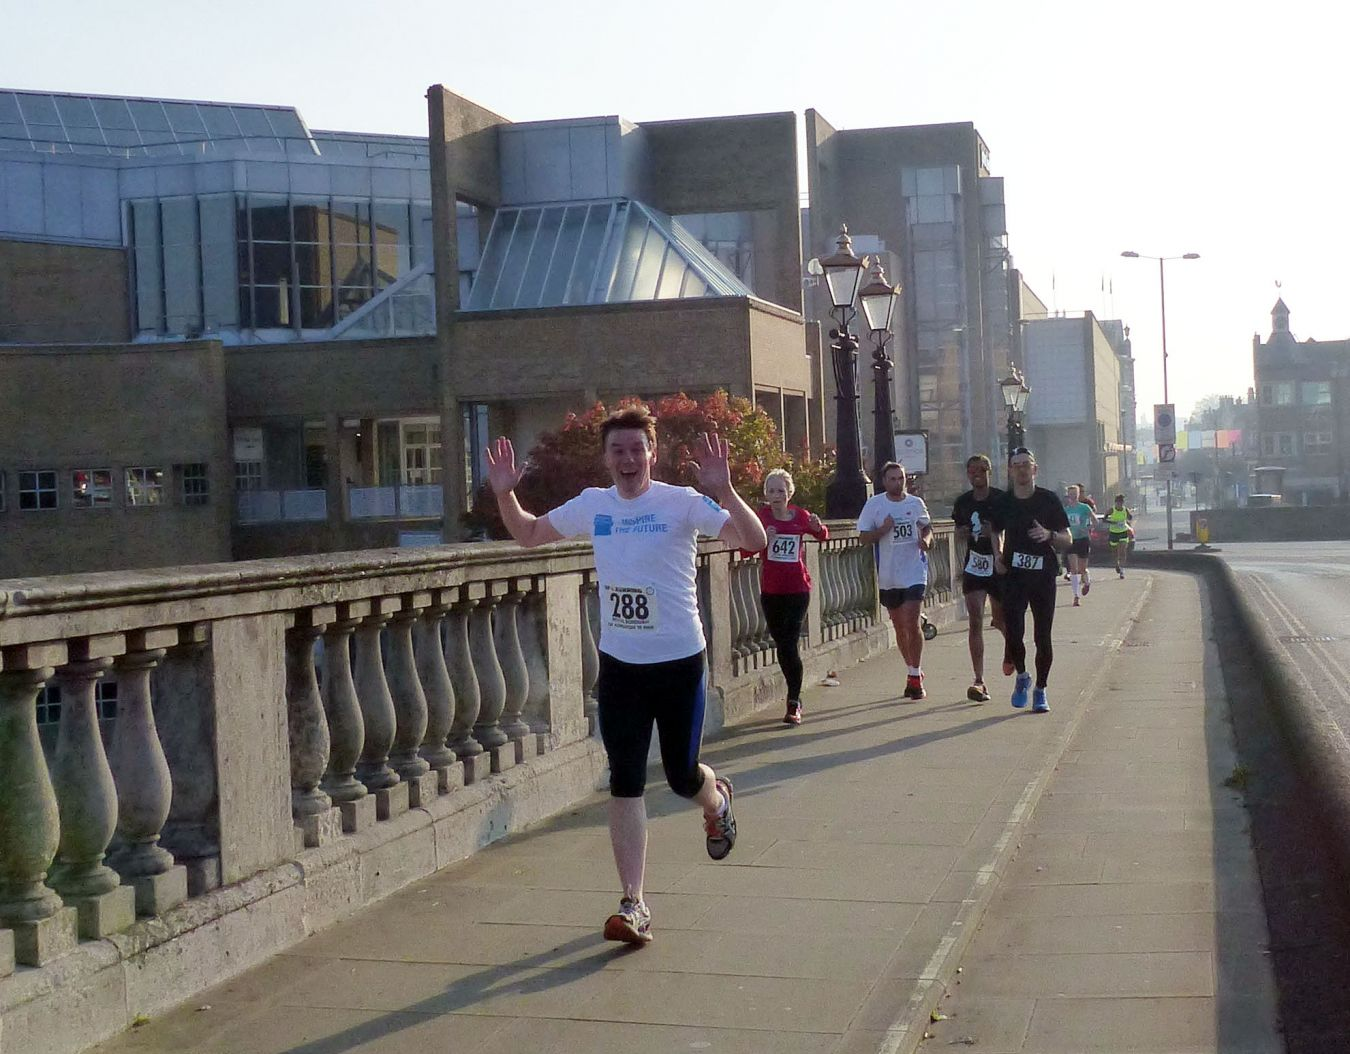 James Keeley running the Royal Borough of Kingston 10-mile run